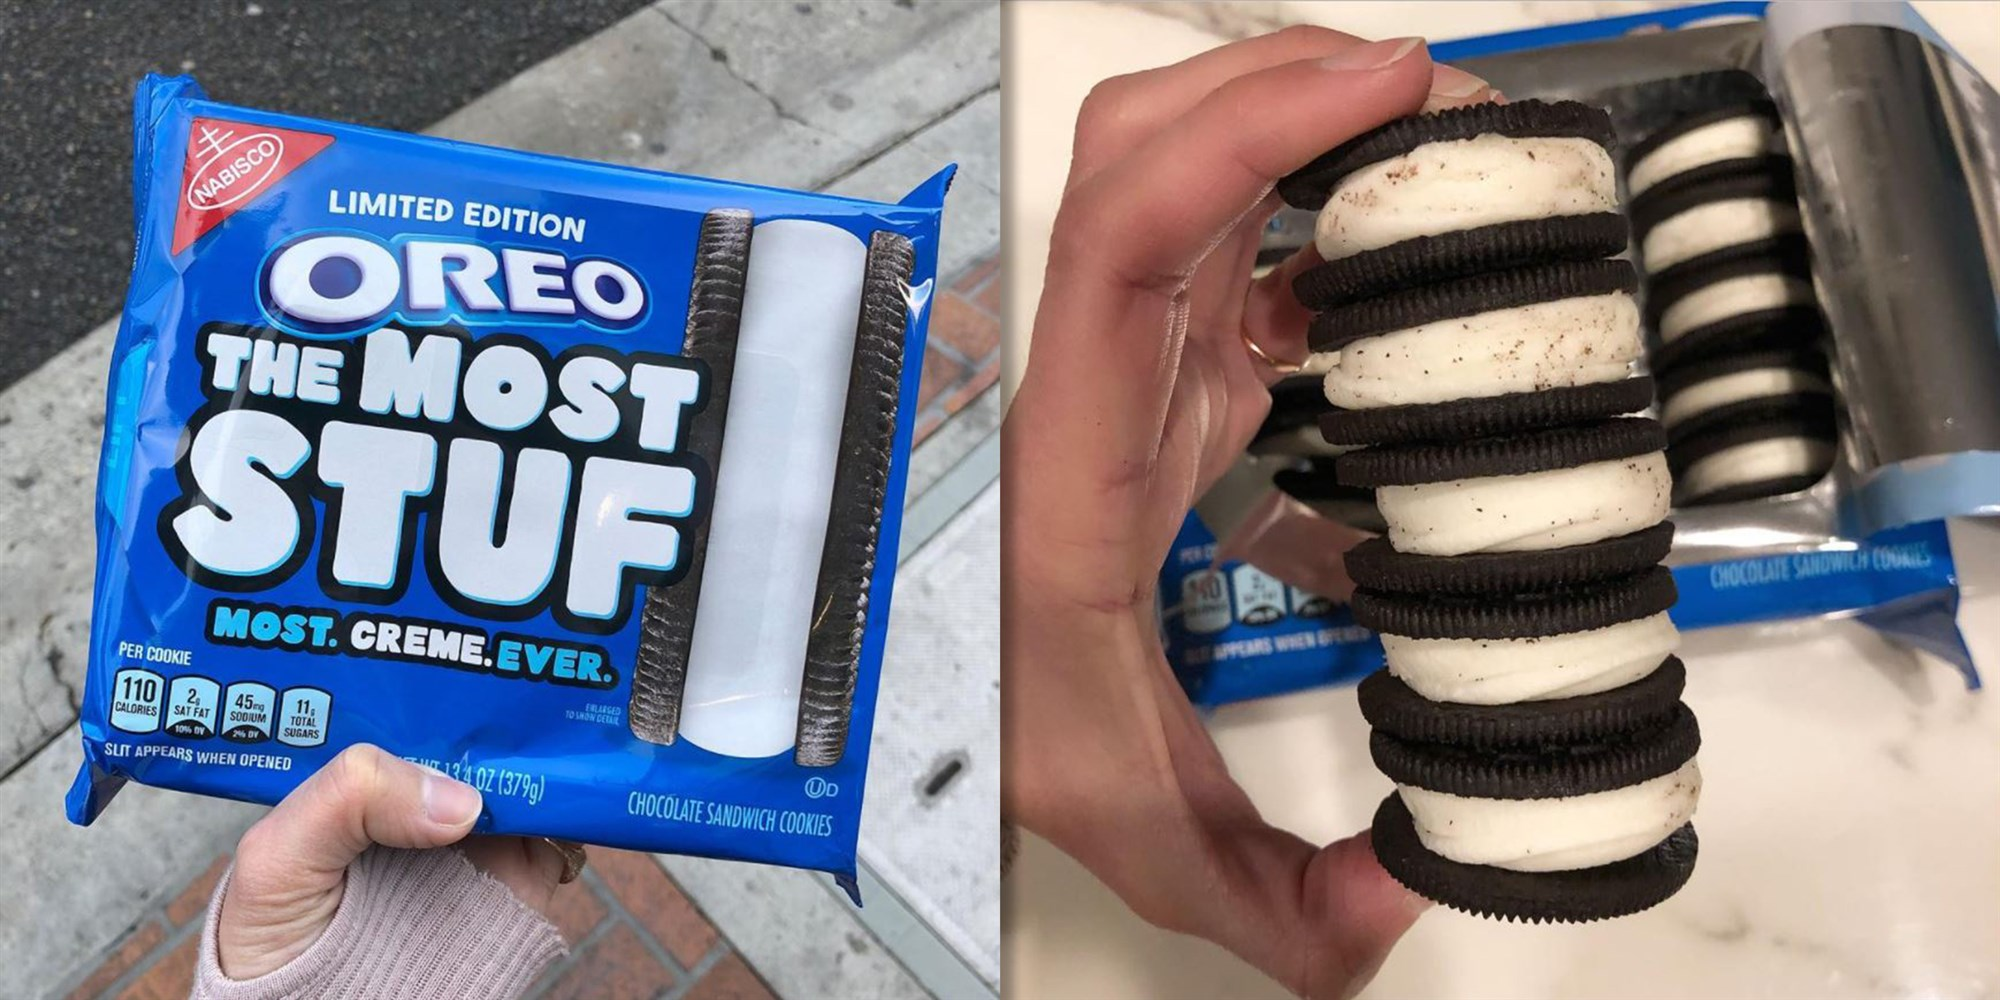 https://cdn.discordapp.com/attachments/365898602469392386/646531612707782656/oreo-most-stuff-today-main-190118_35ad673f352ff09440491b3f435159f8.png